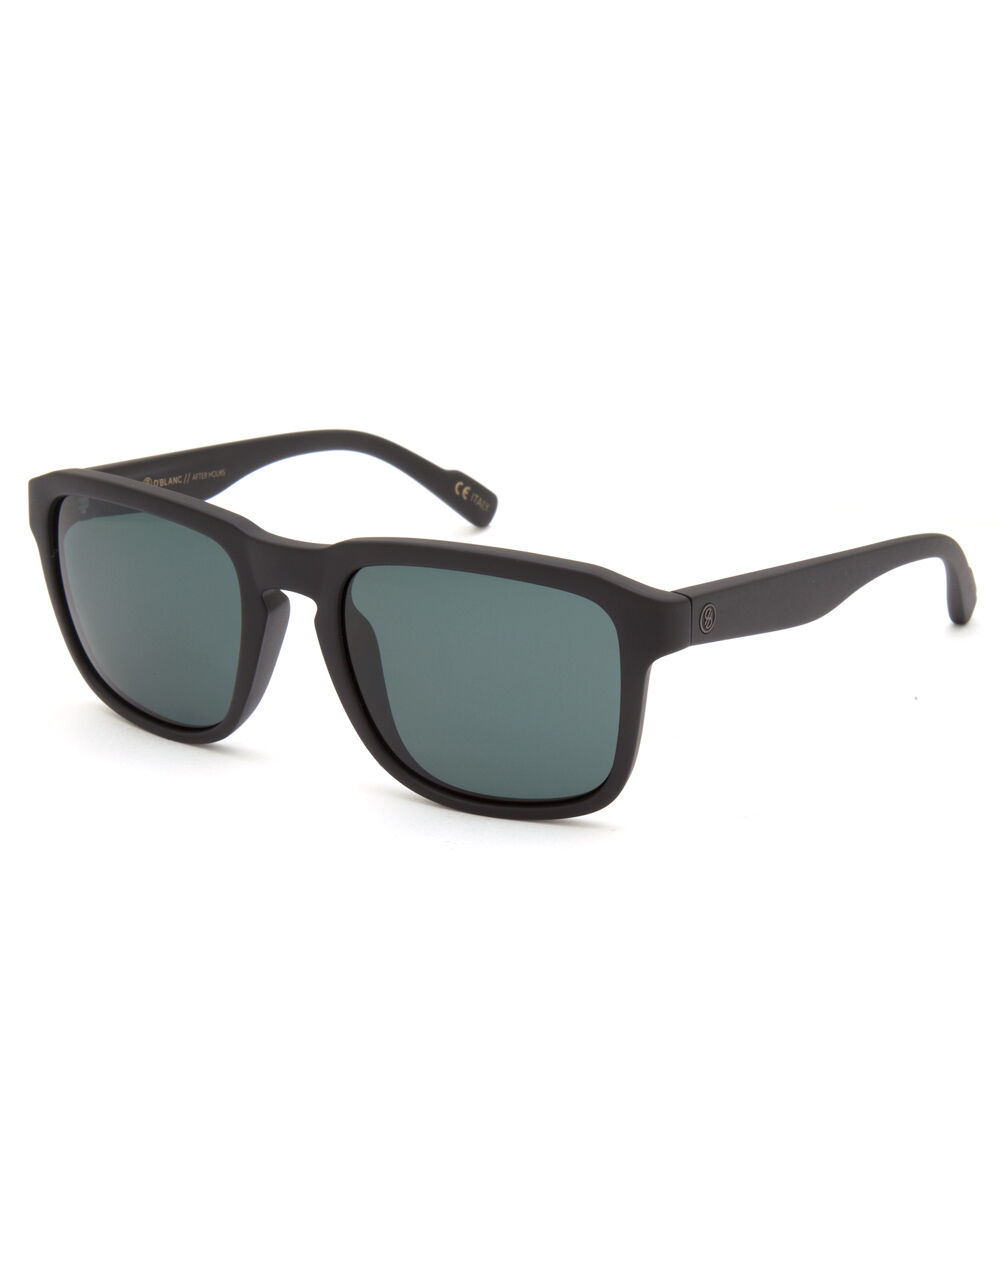 Image of D'BLANC AFTER HOURS POLARIZED SUNGLASSES